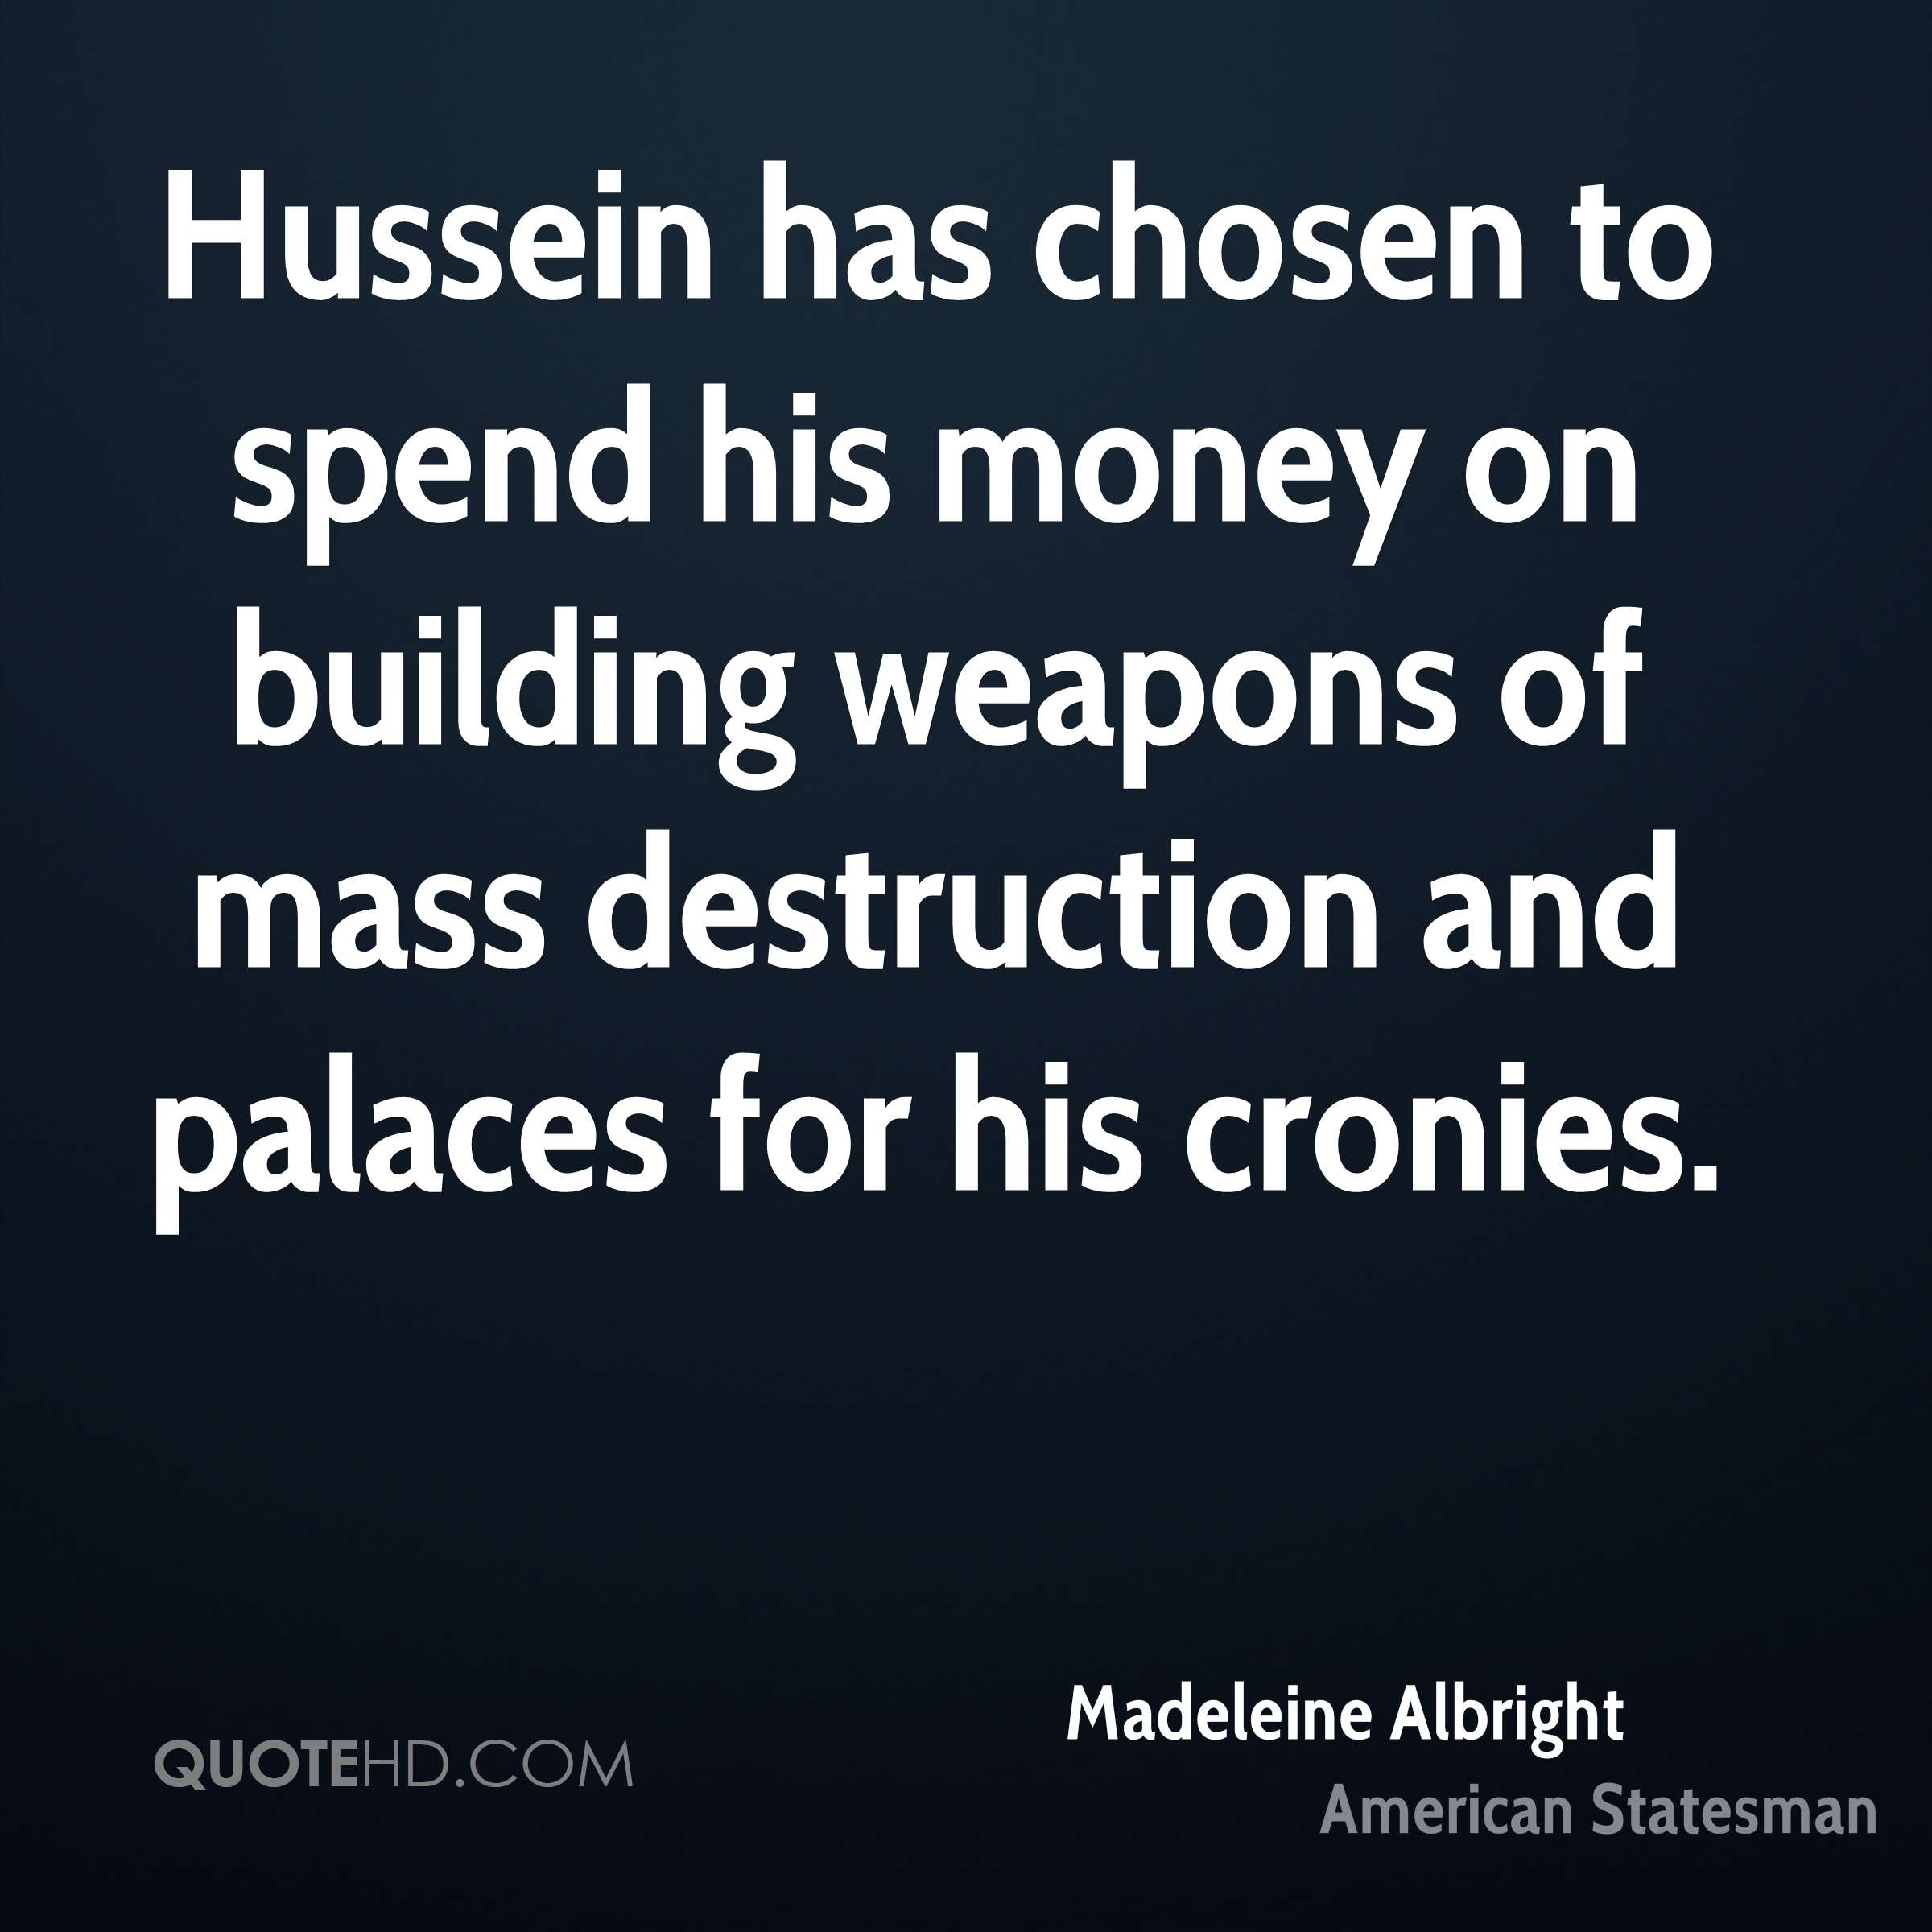 Hussein has chosen to spend his money on building weapons of mass destruction and palaces for his cronies.